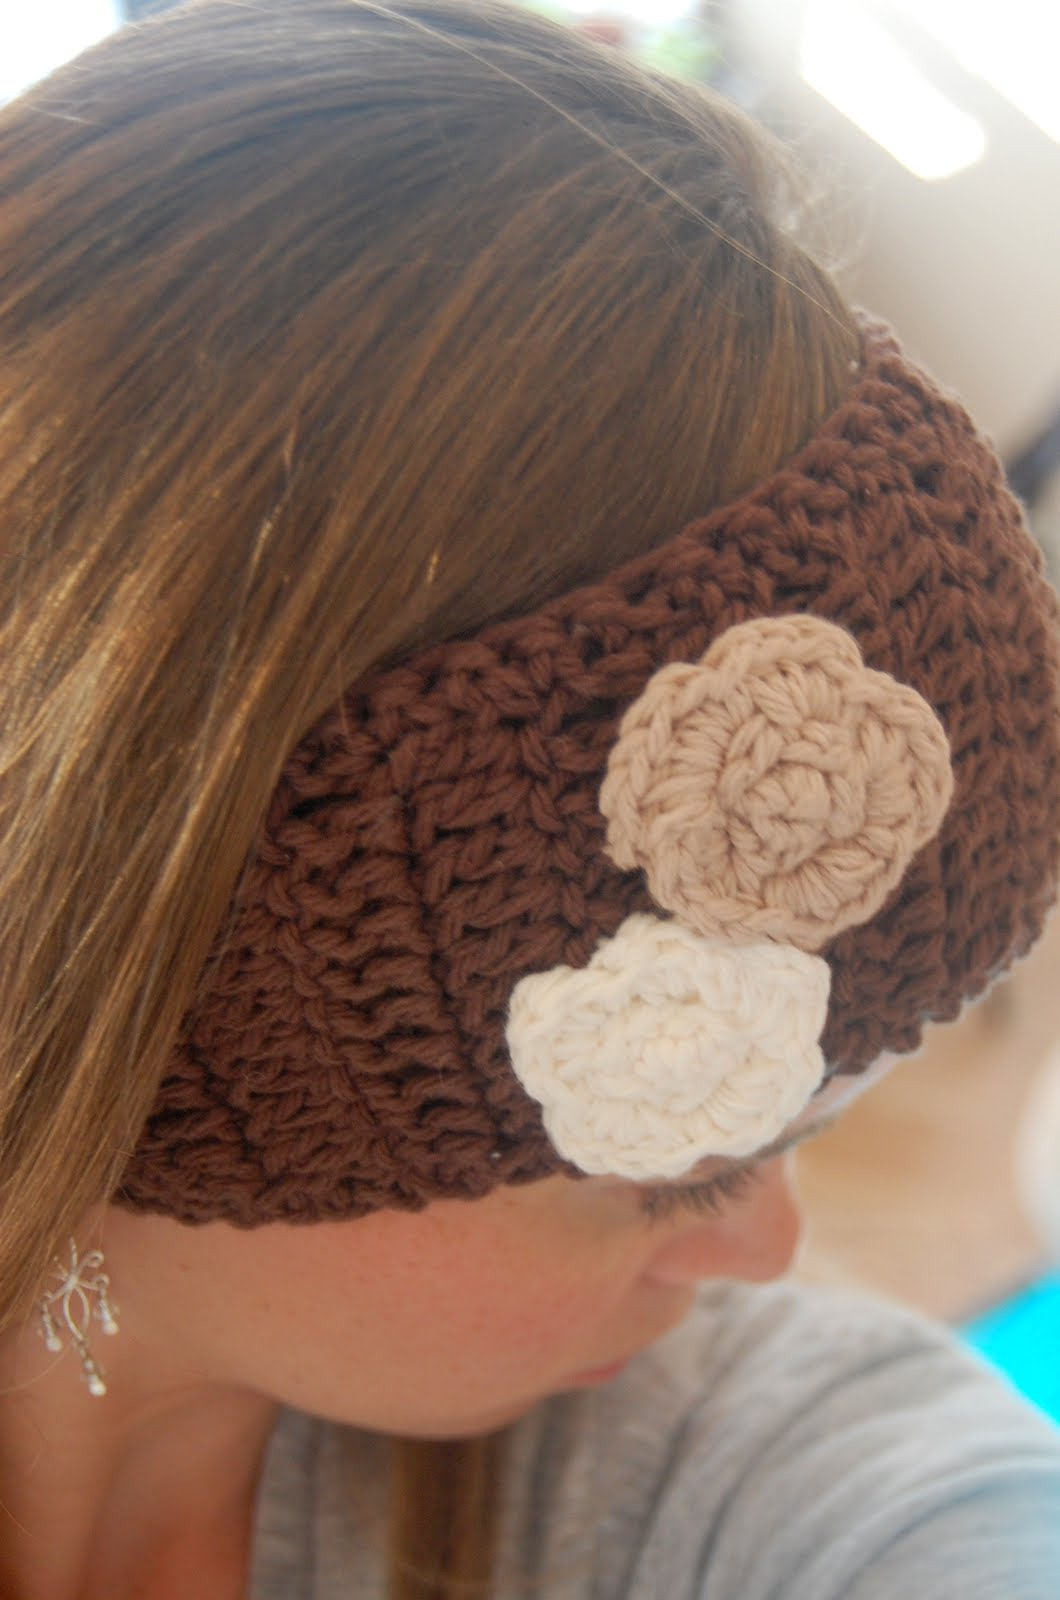 Crochet Flower Ear Warmer Tutorial : Homemade Saturdays: Tutorial: Crocheted Ear Warmer